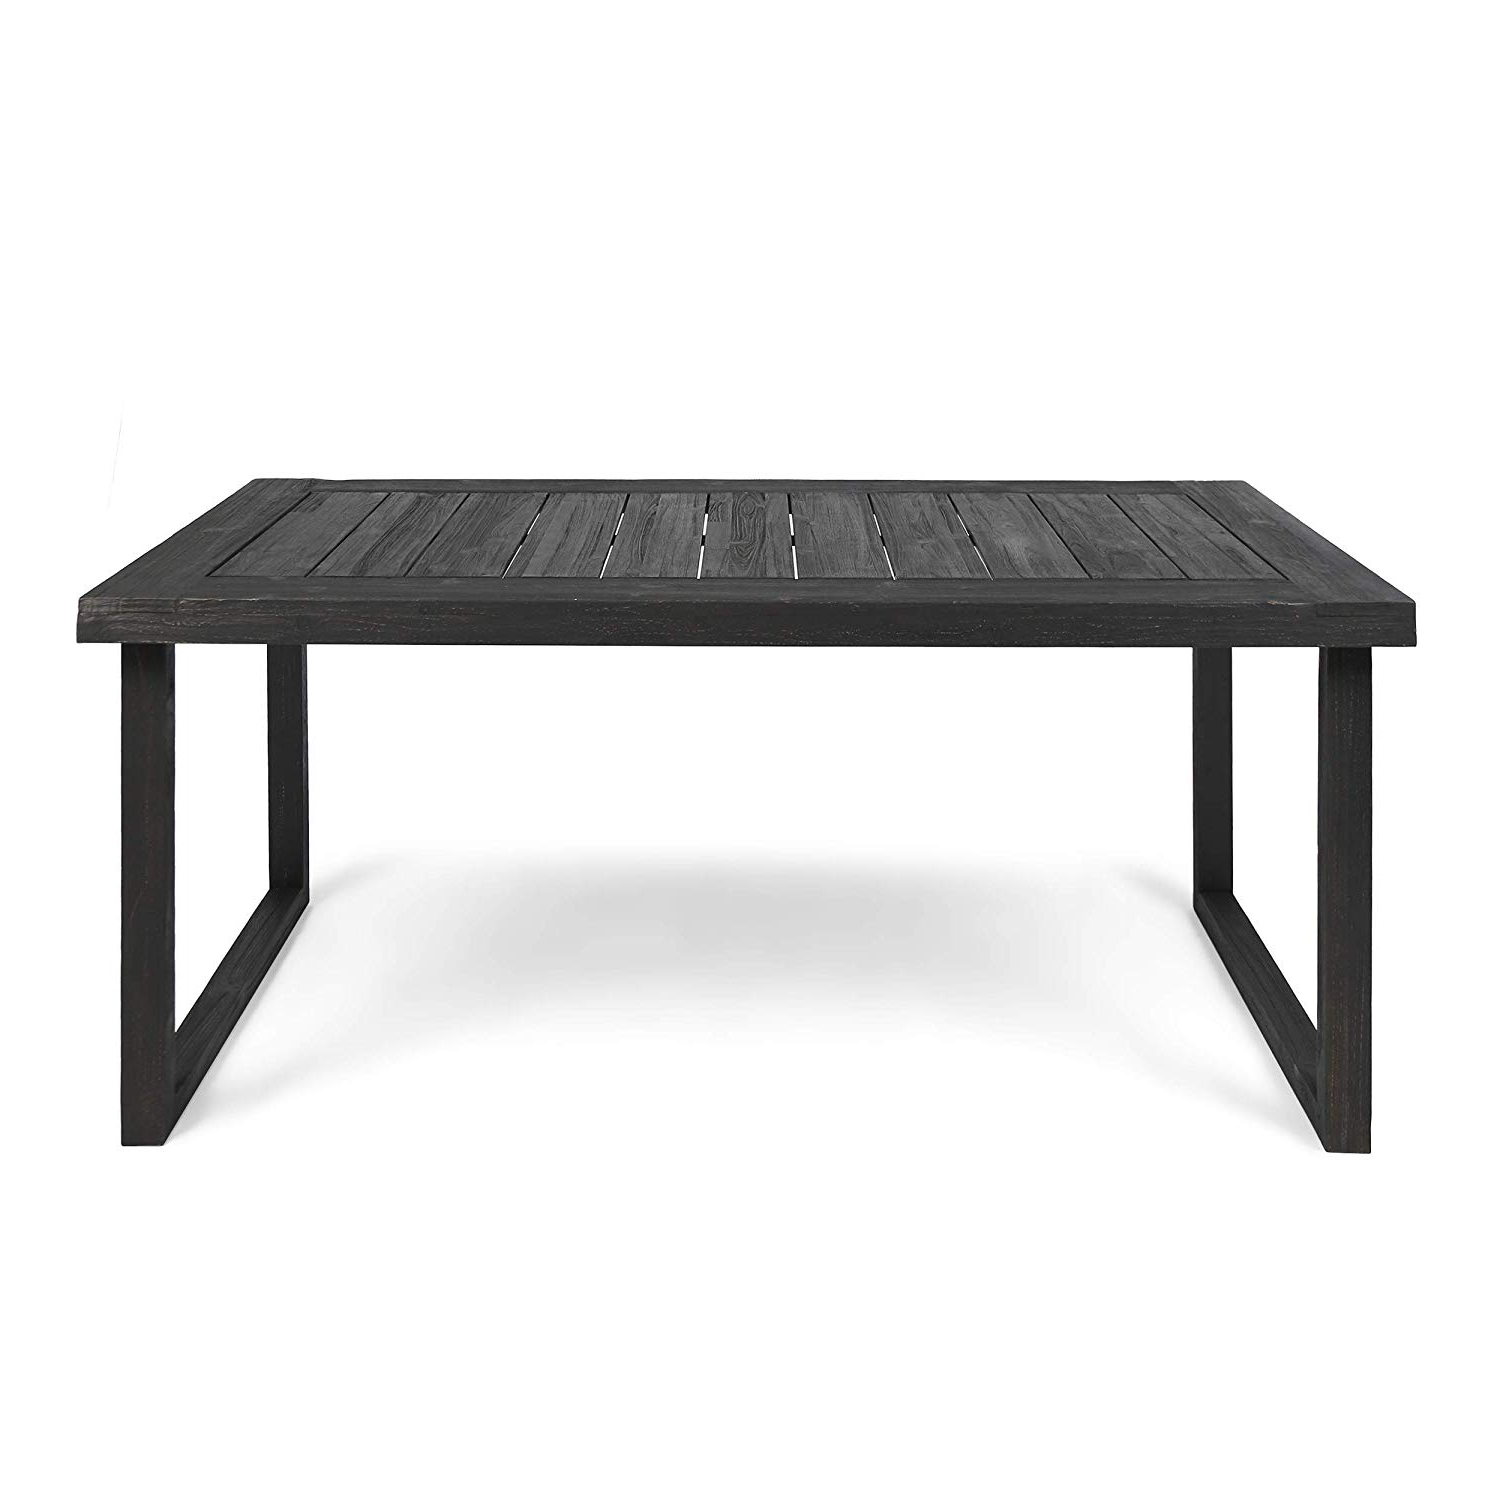 "2017 Christopher Knight Home Ann Outdoor 69"" Acacia Wood Dining Table, Sandblast Dark Gray Finish With Regard To Acacia Dining Tables With Black X Legs (View 17 of 30)"